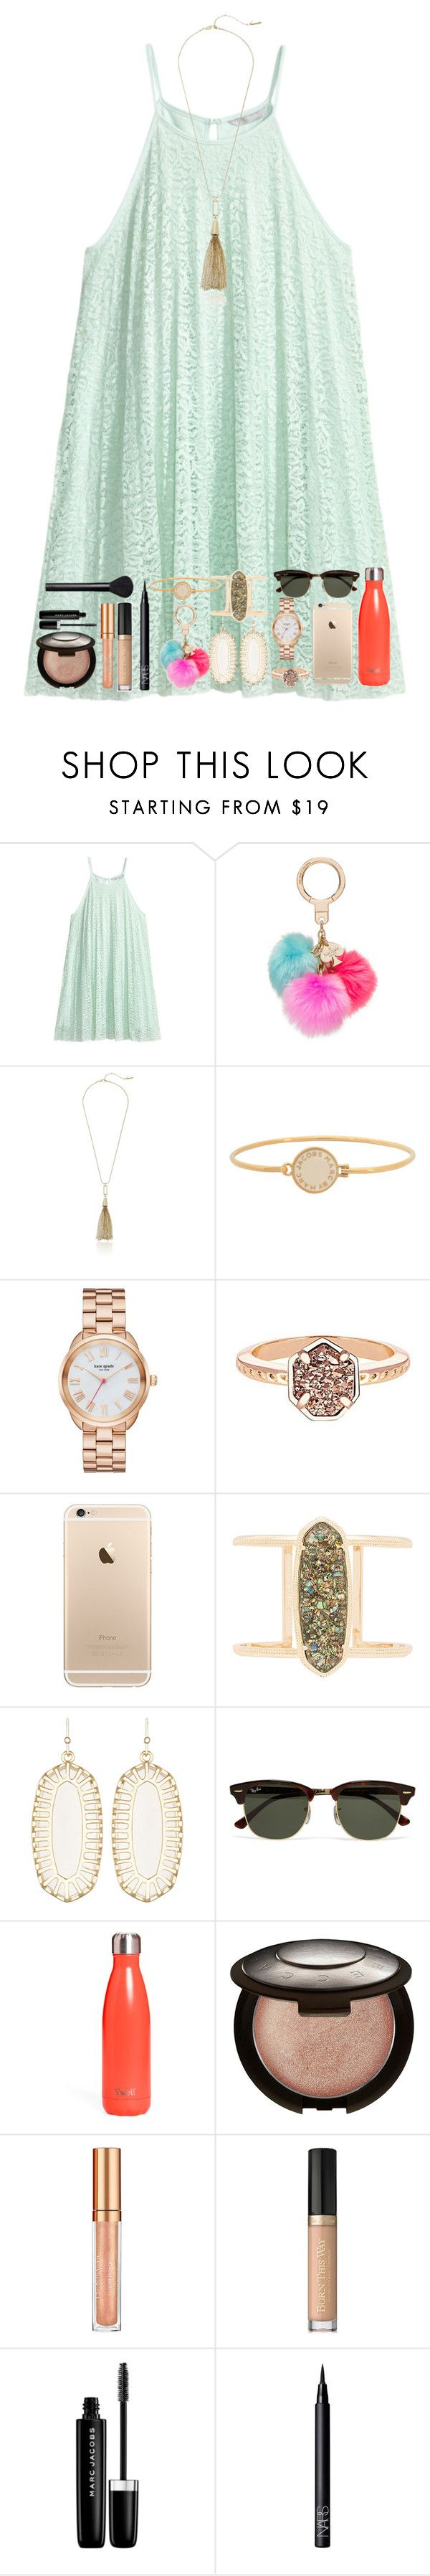 """Untitled #105"" by tortor7 ❤ liked on Polyvore featuring H&M, Kate Spade, Kenneth Cole, Marc by Marc Jacobs, Kendra Scott, Ray-Ban, S'well, Becca, Elizabeth Arden and Too Faced Cosmetics"